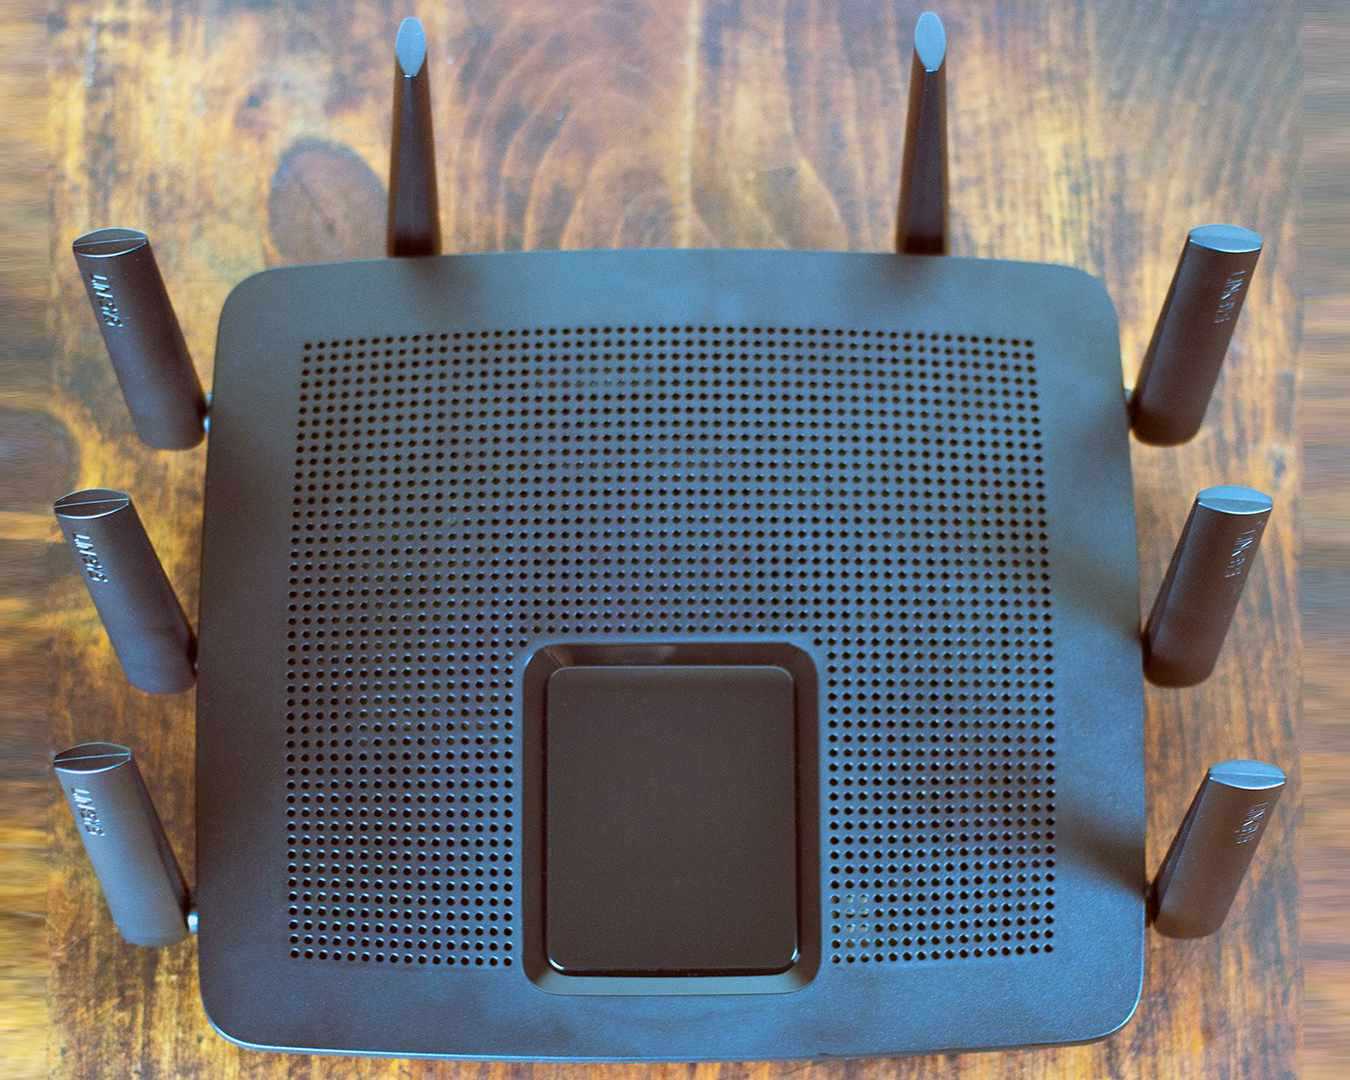 Linksys EA9500 Tri-Band Wireless Router